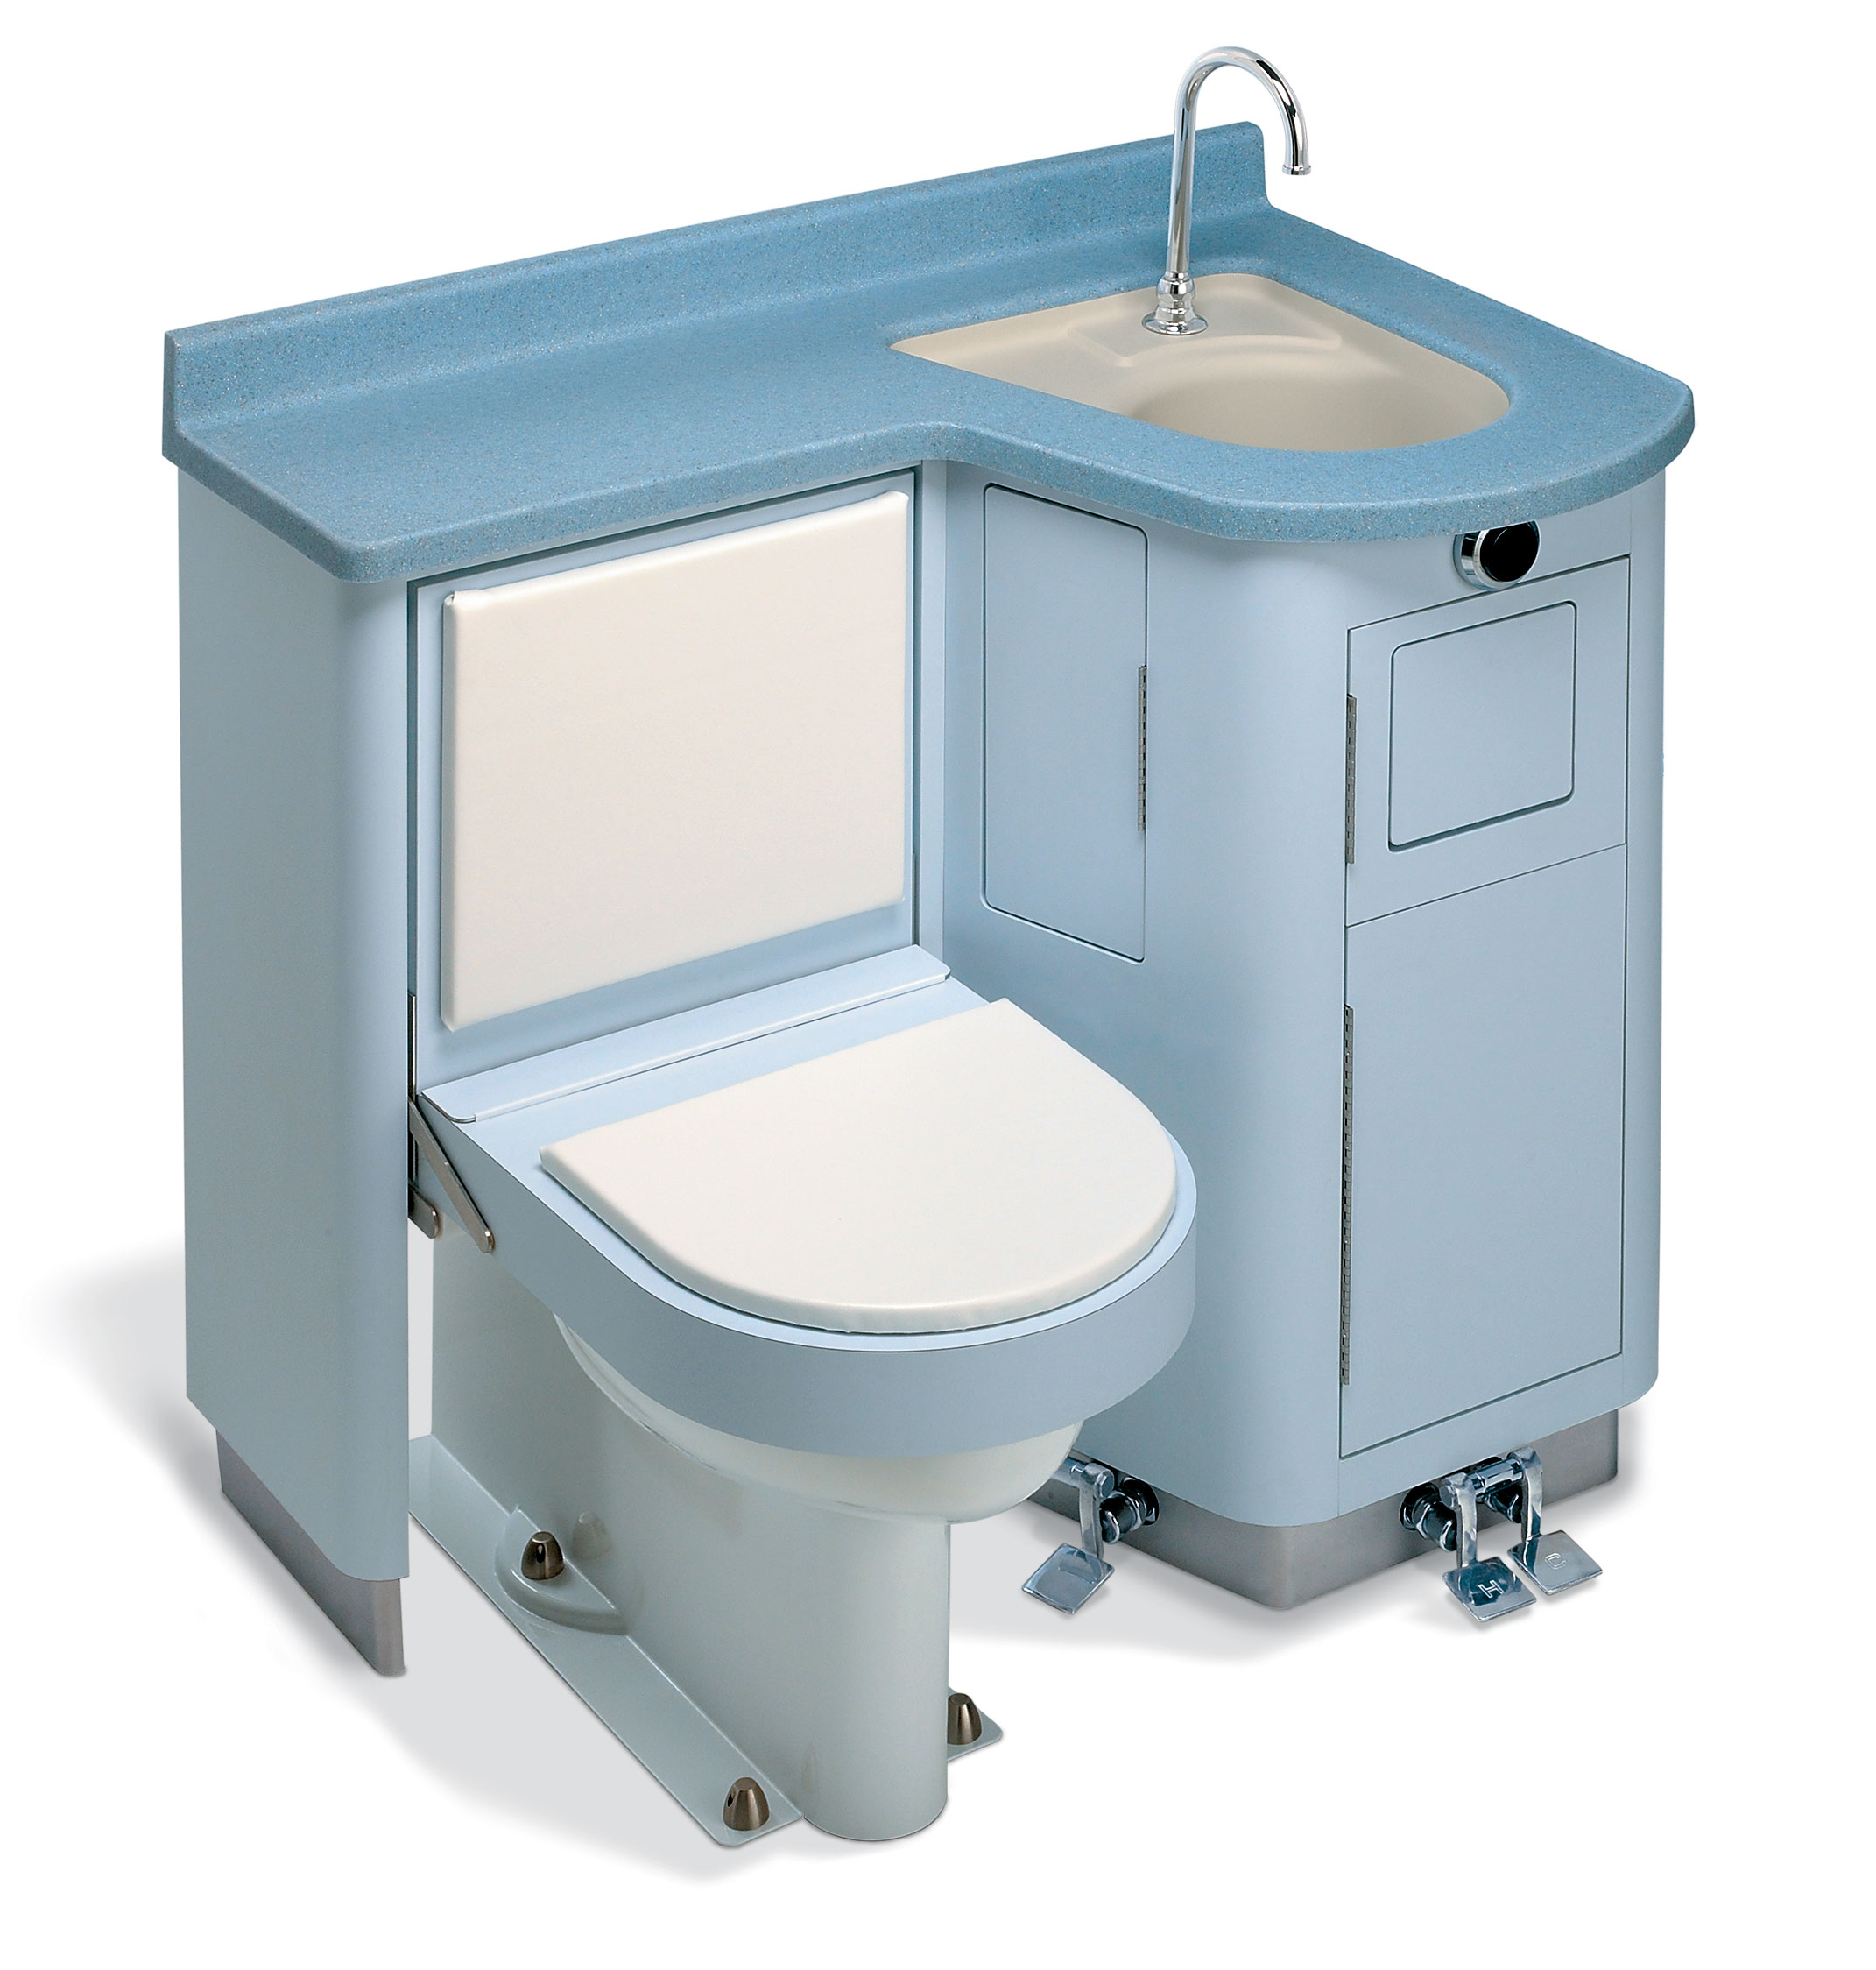 Lavatory fixed water closet bed pan washer comby for Toilet and sink combo